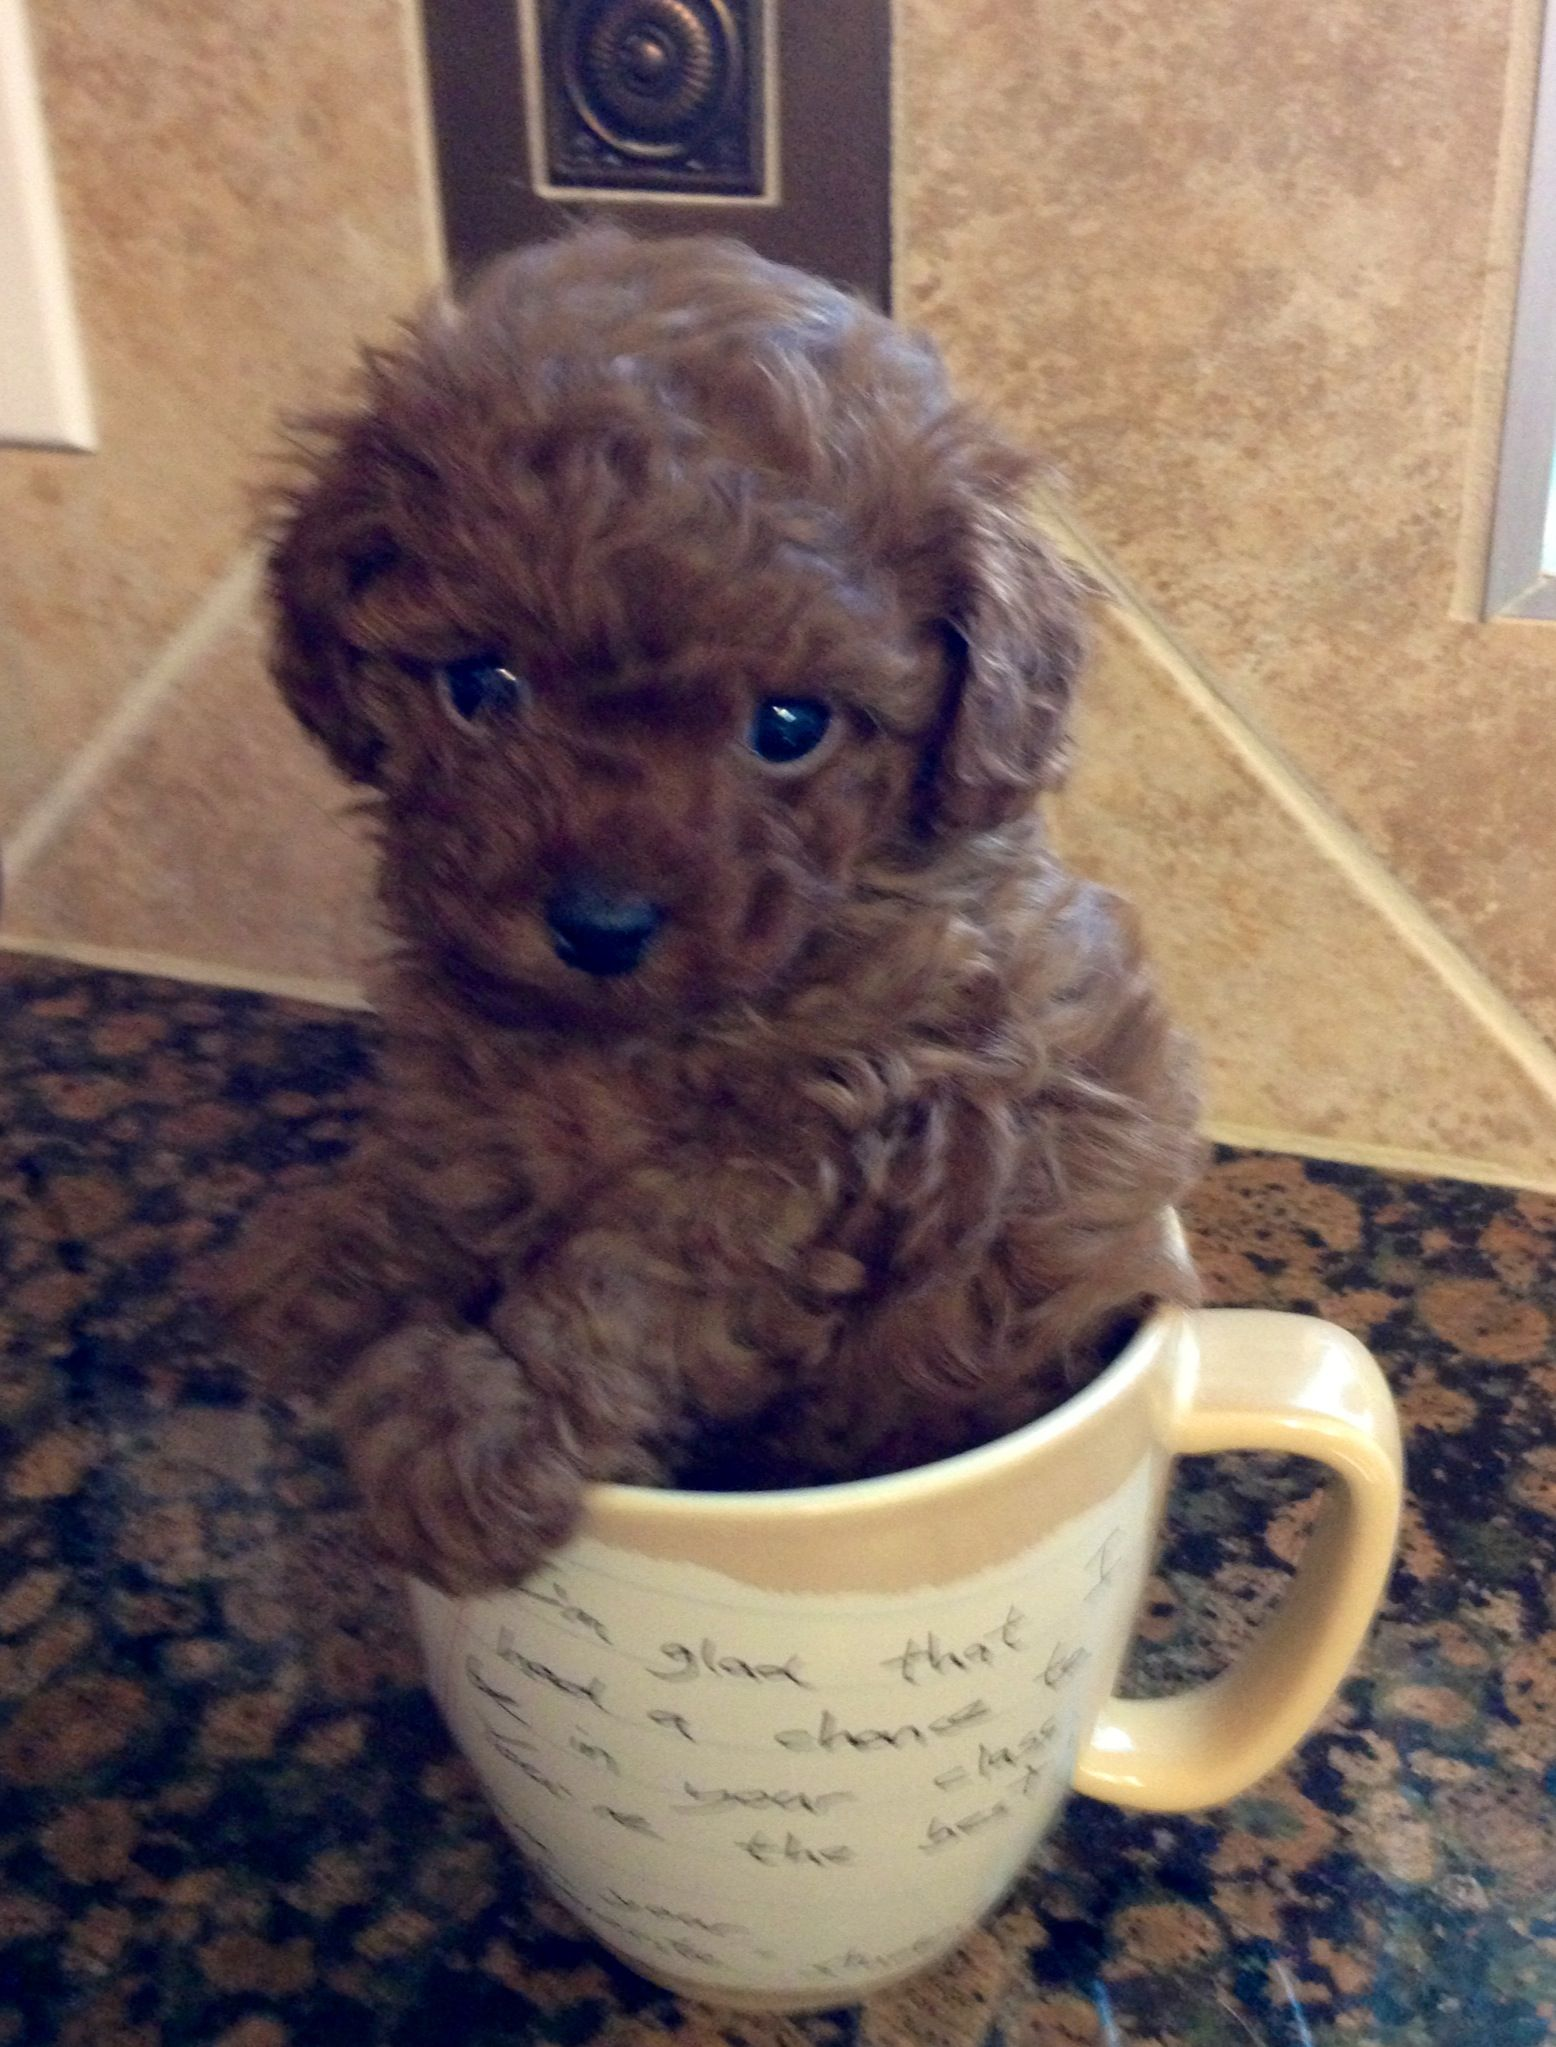 Platinum tea cup poodles for sale dog breeds picture - My Little Teacup Poodle Tap The Pin For The Most Adorable Pawtastic Fur Baby Apparel You Ll Love The Dog Clothes And Cat Clothes